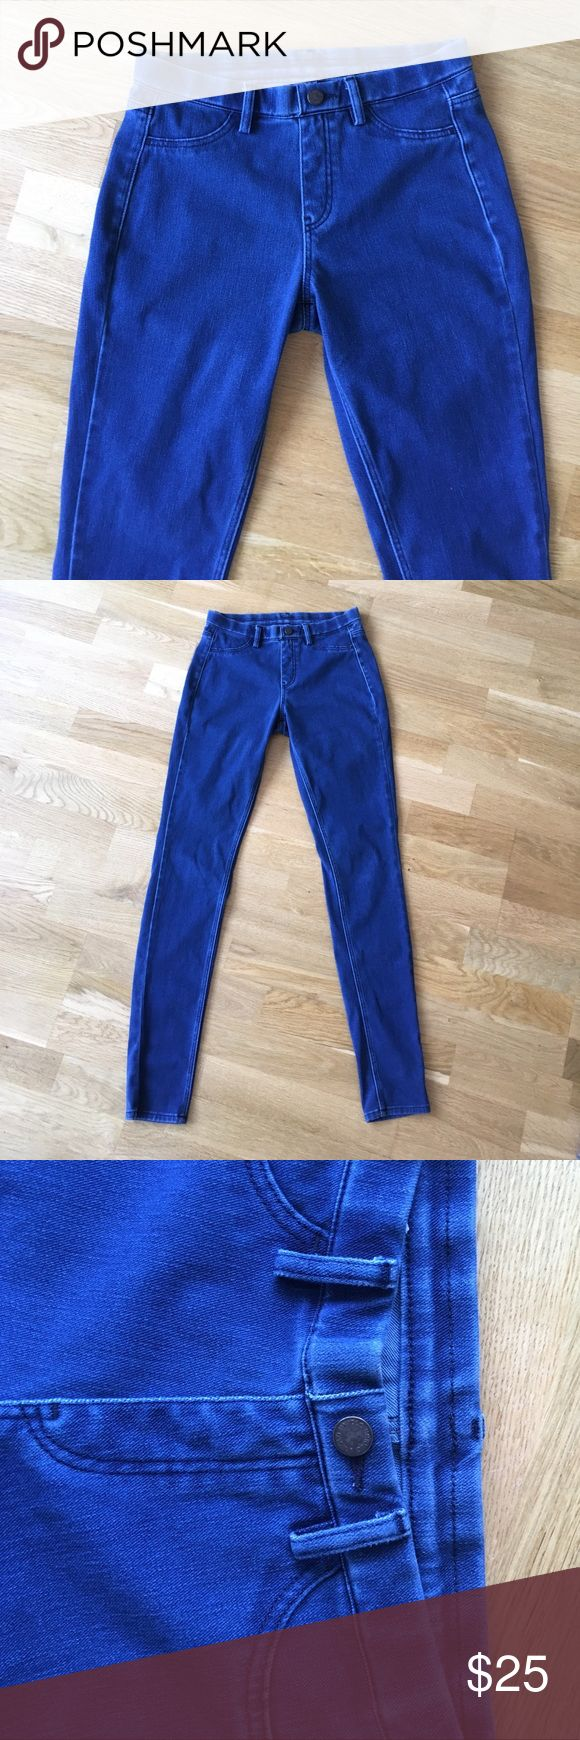 Uniqlo leggings pants in XS They feel like leggings but look like jeans! Extremely easy and comfortable. Size XS. No signs of wear. Uniqlo Pants Leggings